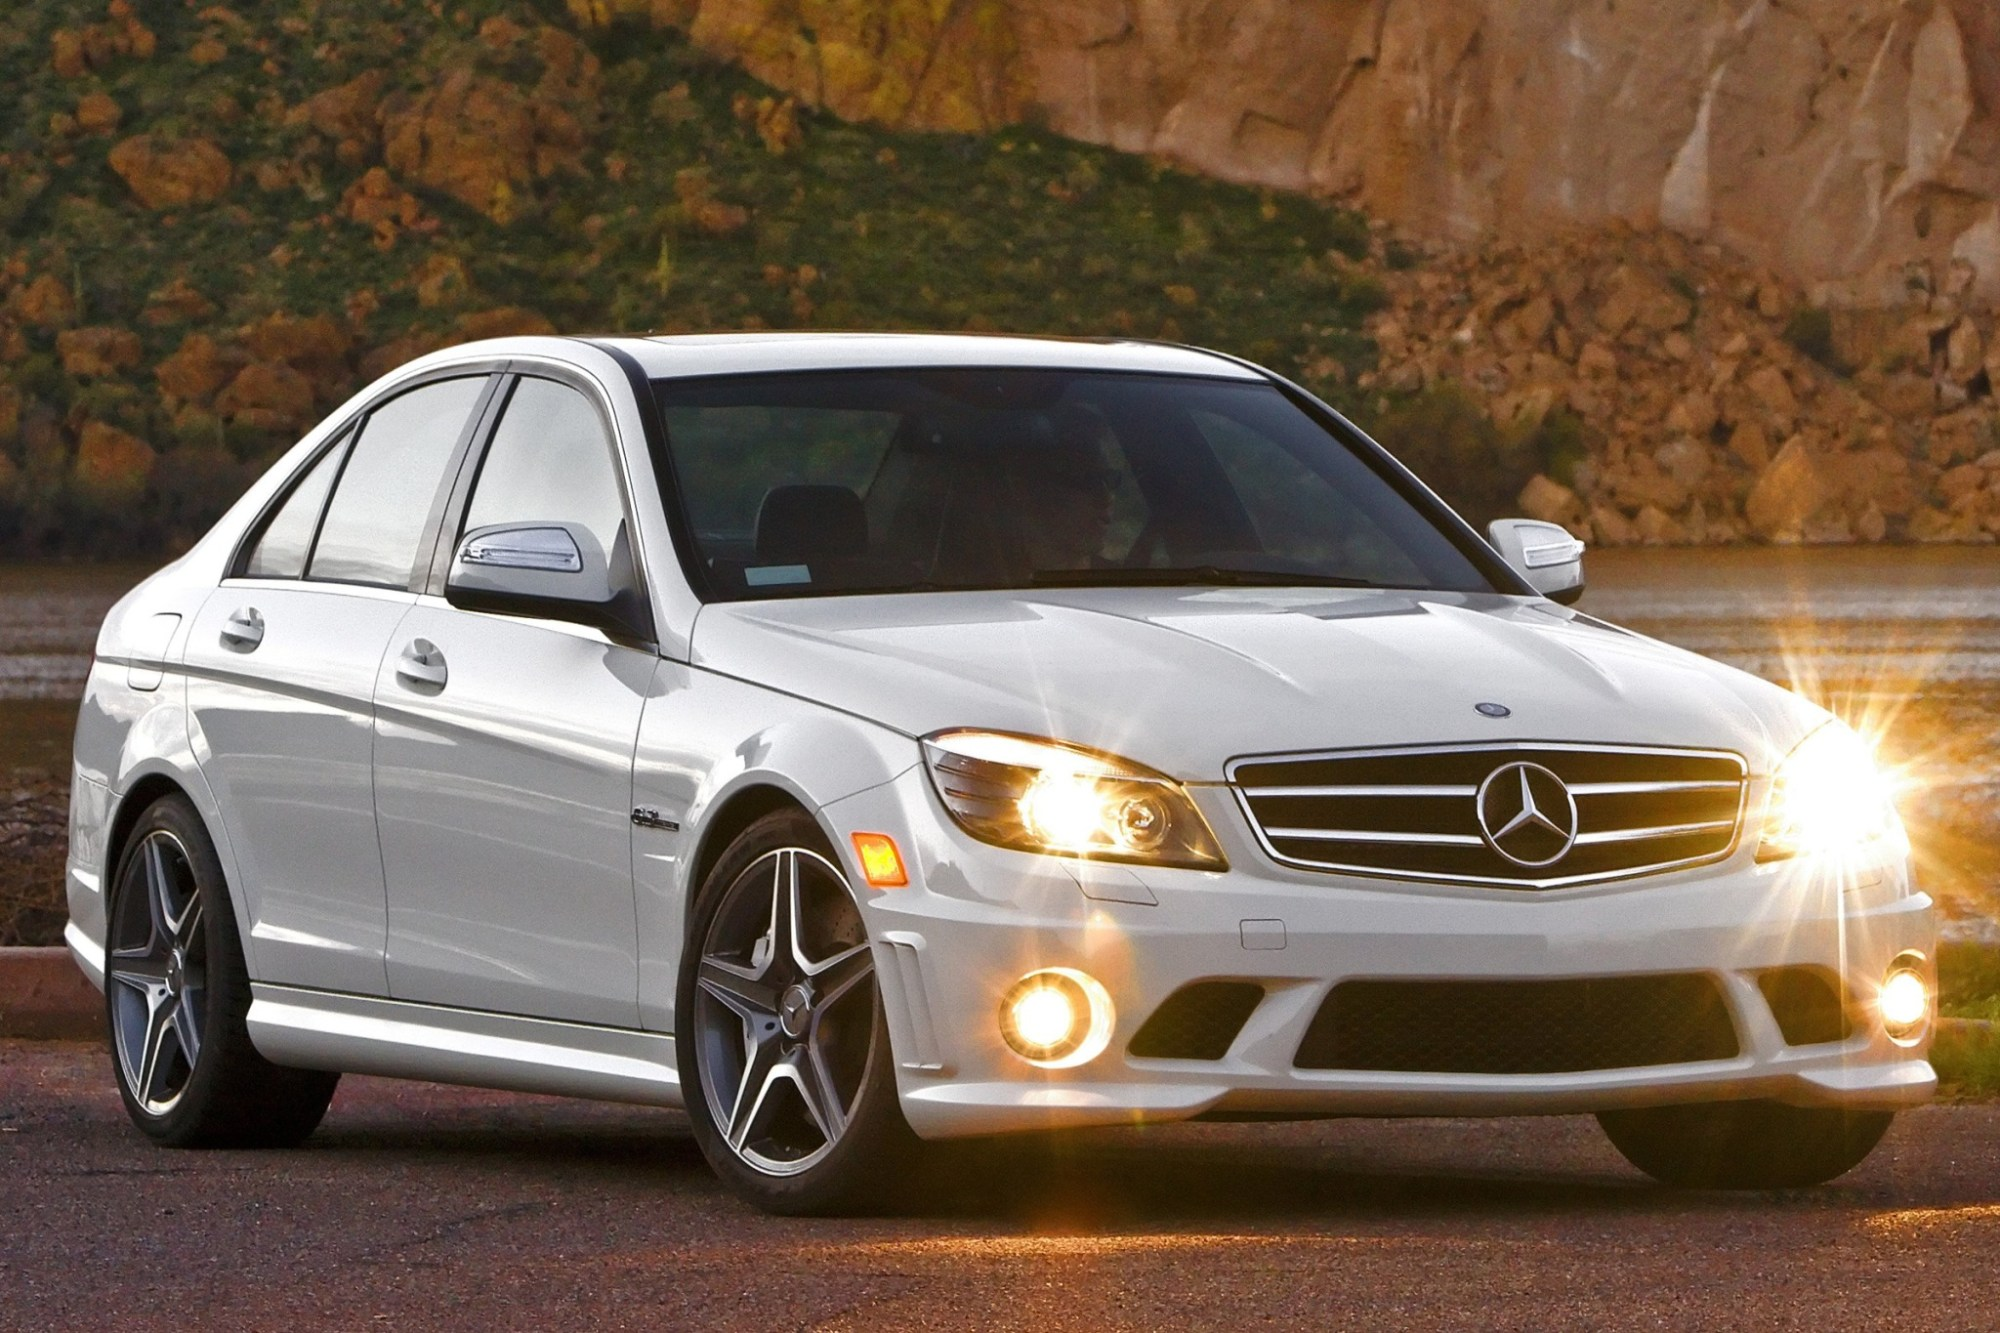 hight resolution of  2010 mercedes benz c class c300 4matic luxury sedan exterior